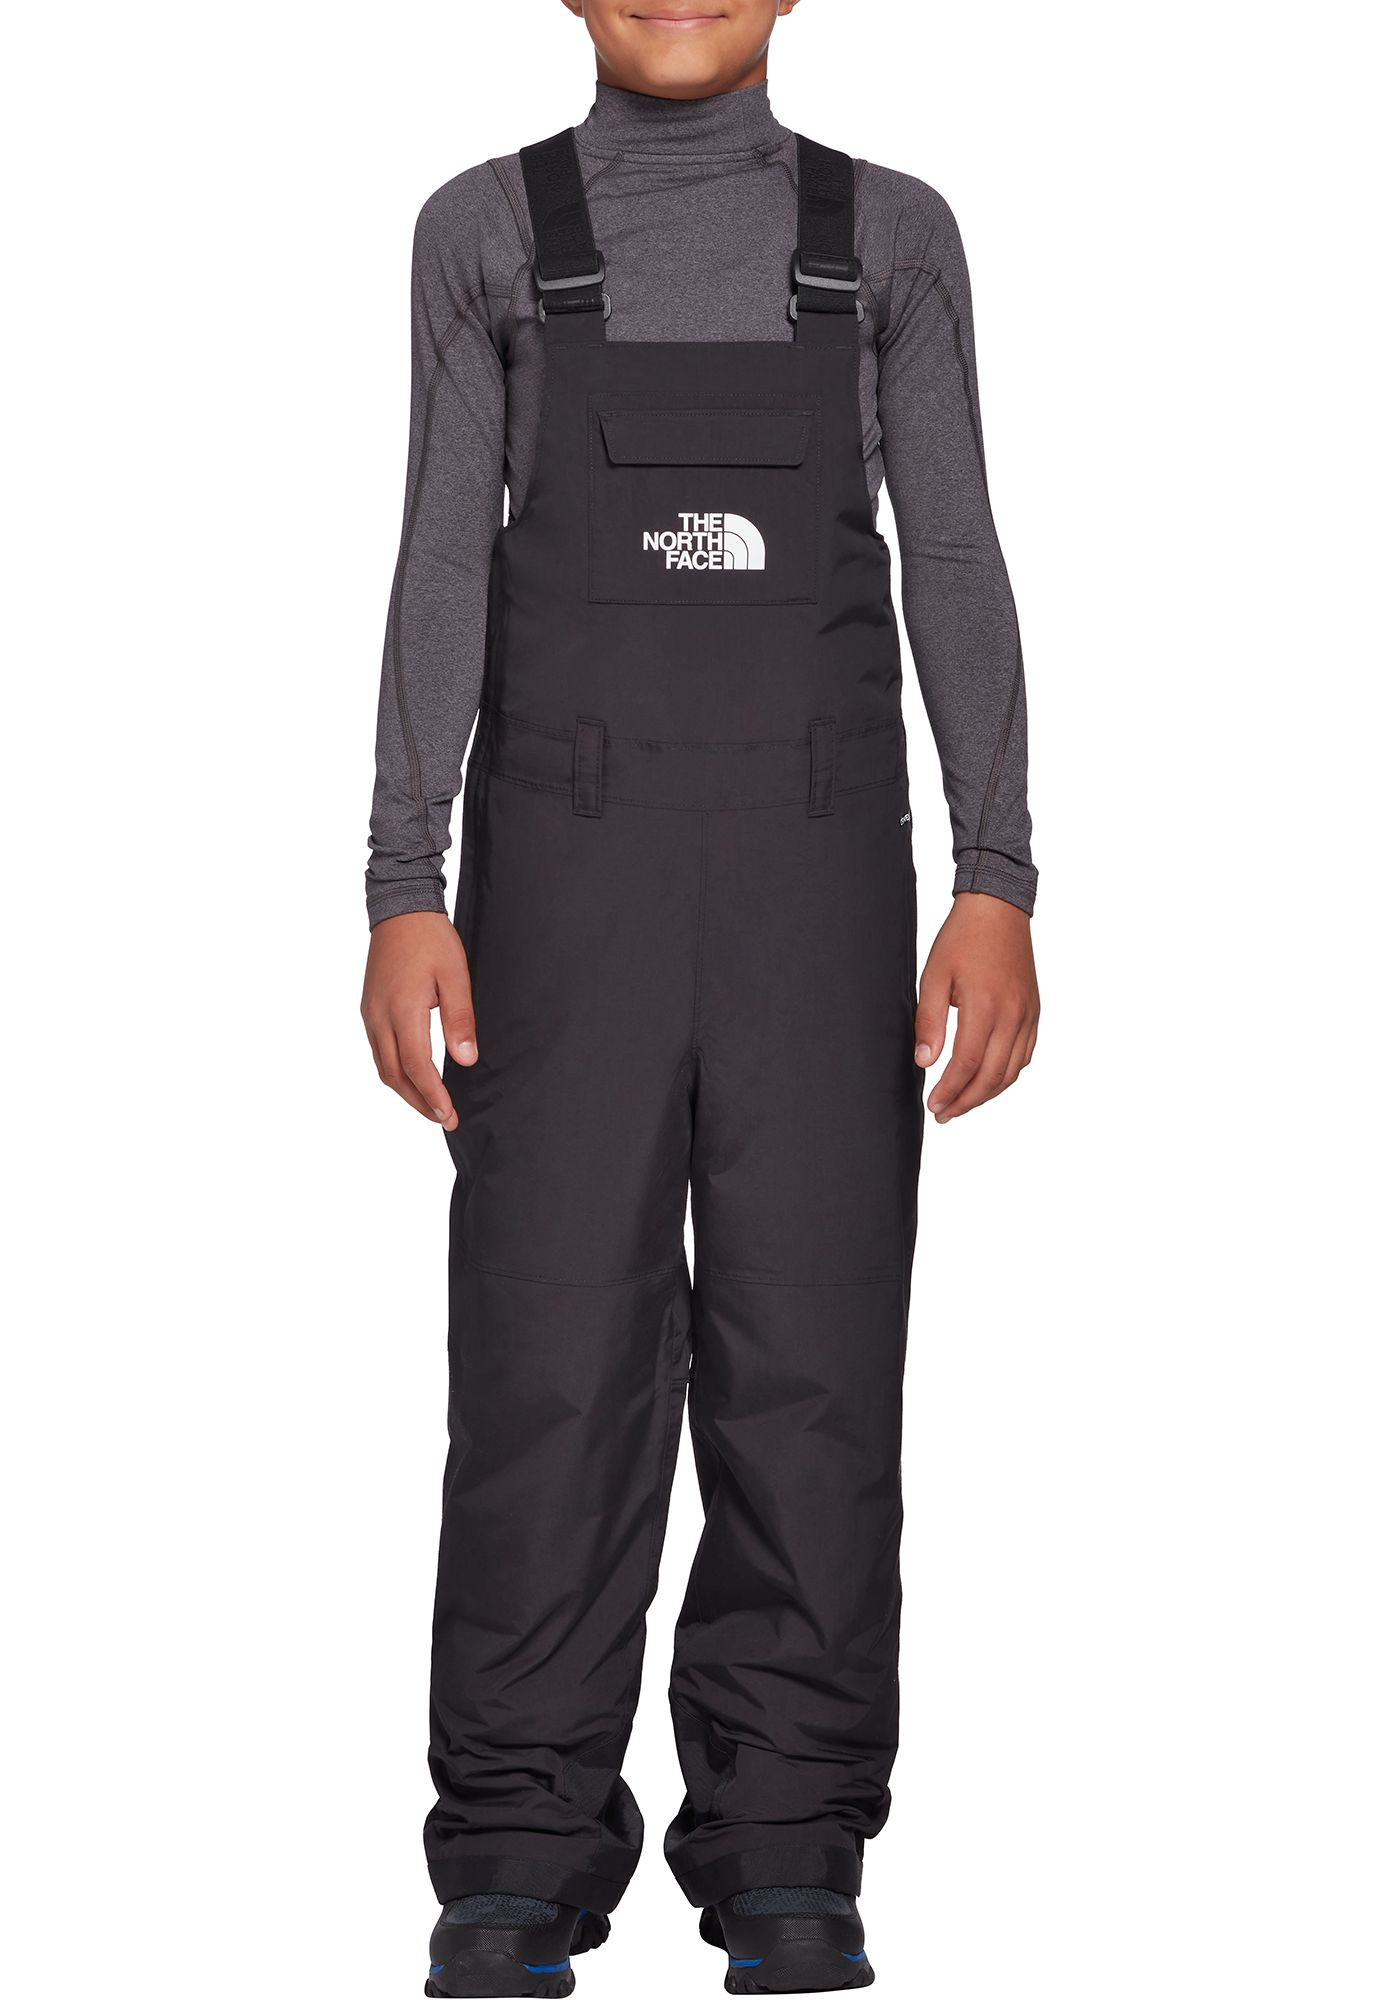 The North Face Youth Freedom Insulated Snow Bib